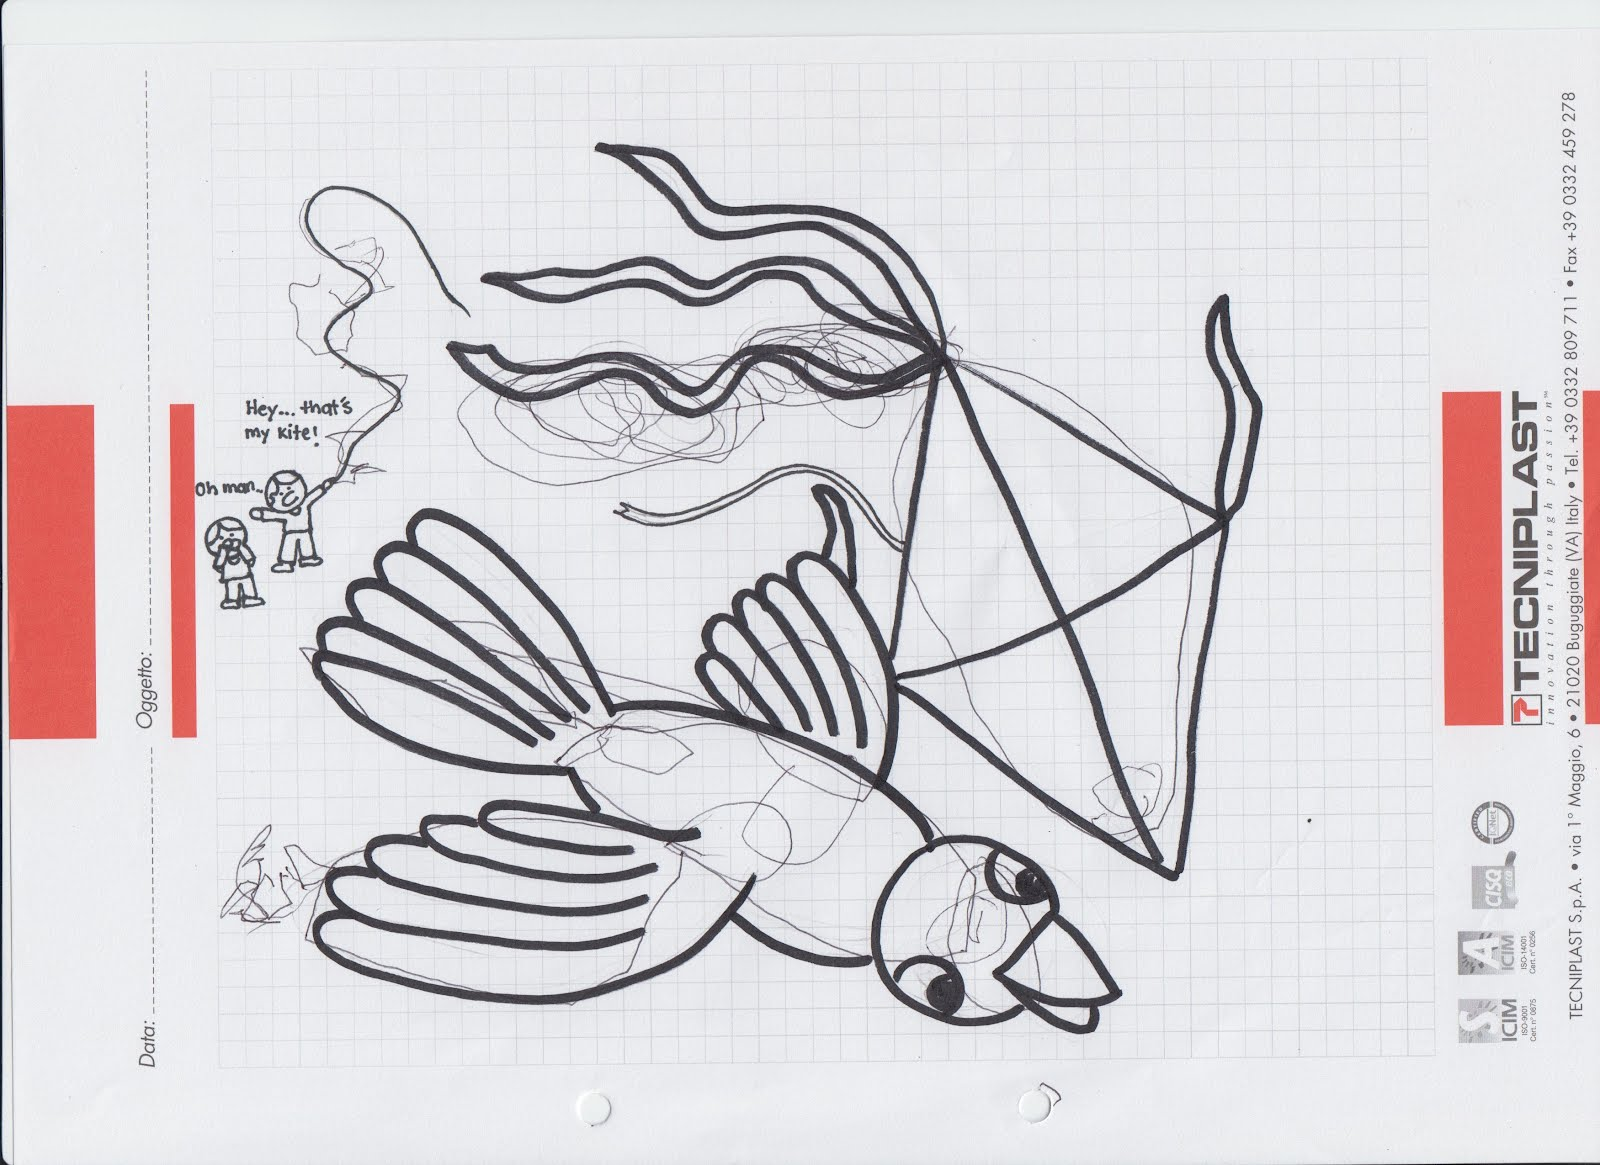 i feel like drawing let s fly together both kite and bird fell on the ground upin and the gang rescued the injured bird and at last the bird was able to fly again nice story